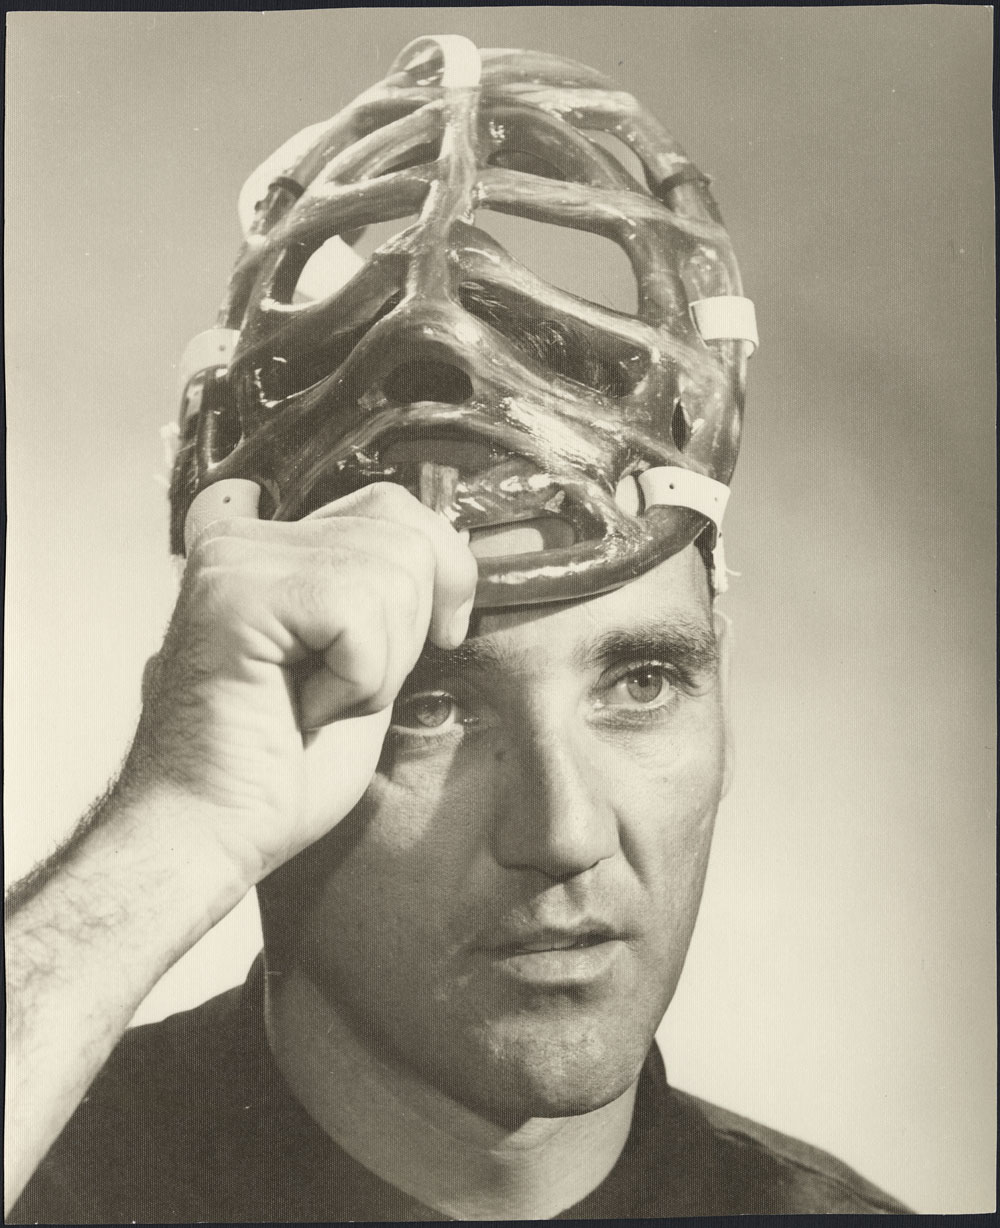 Jacques Plante soulevant son masque de joueur de hockey. (item 2)